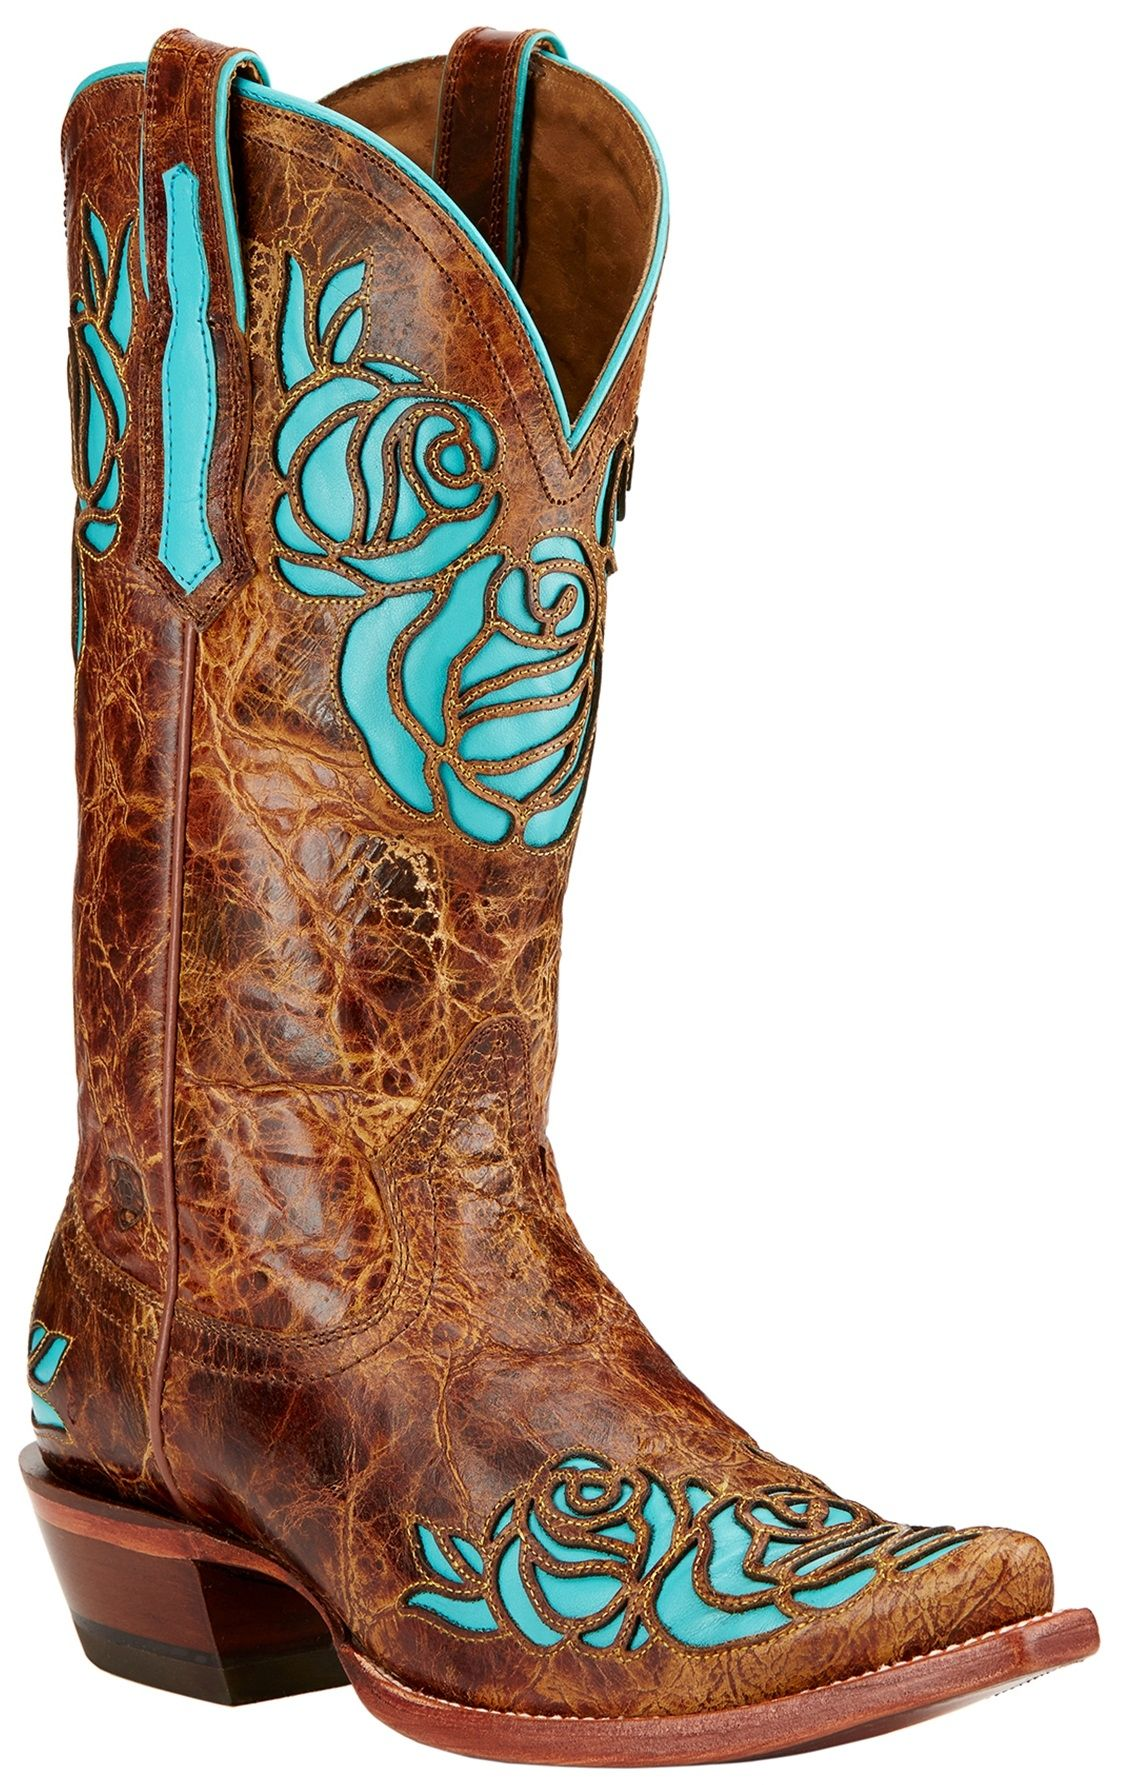 Women's Ariat Dusty Rose X Toe Cowgirl Boot - Saddle Tan Full Grain Leather  Casual